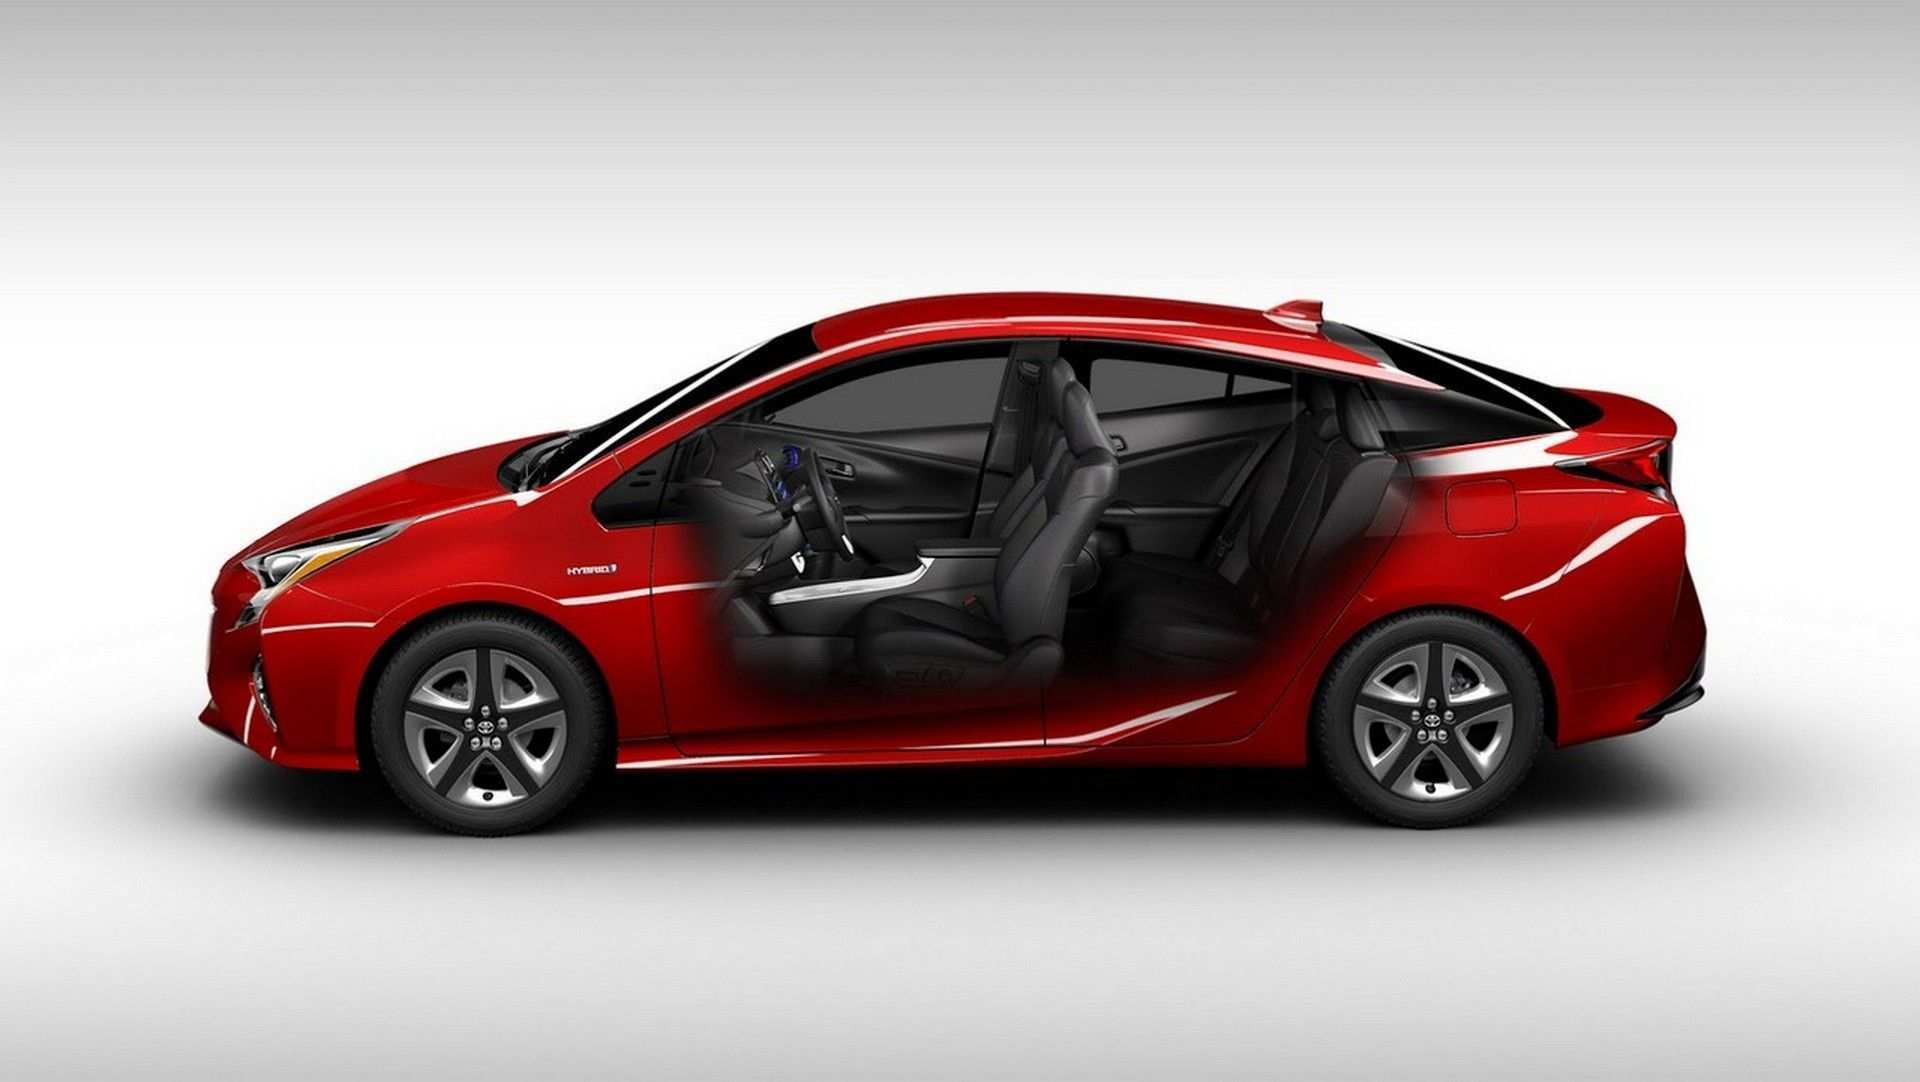 94 Gallery of Prius Toyota 2020 Wallpaper with Prius Toyota 2020